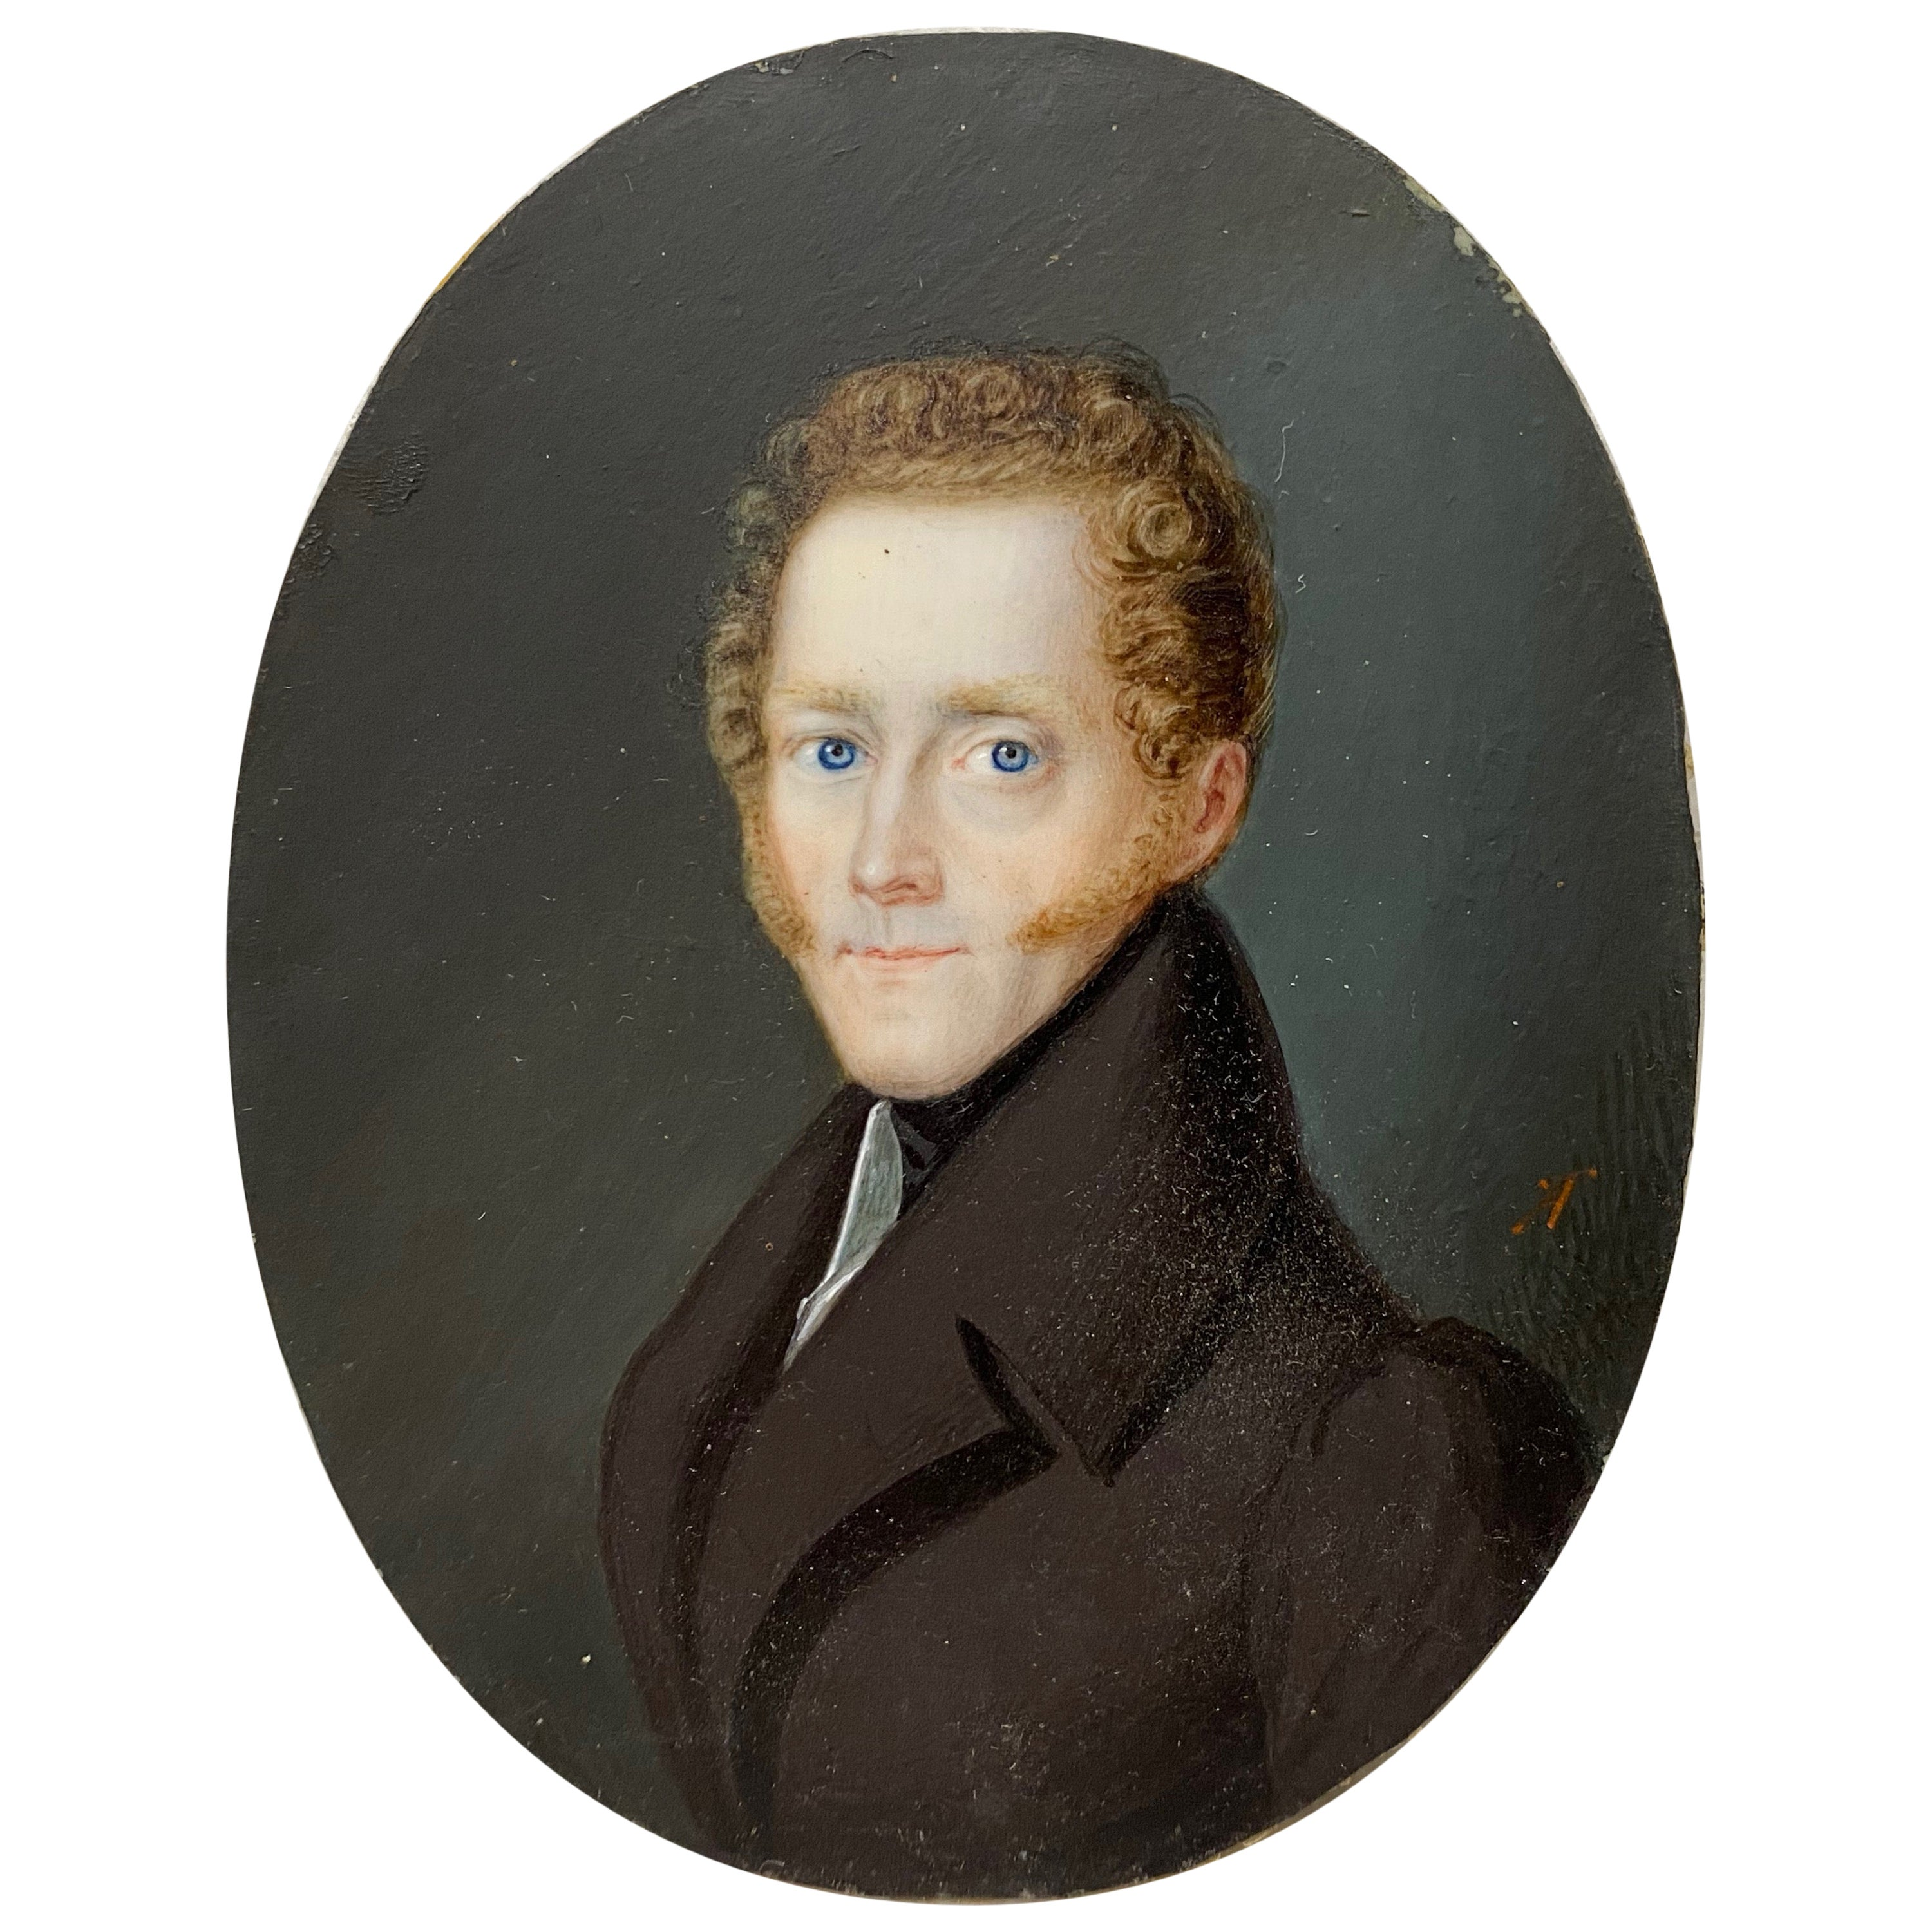 19th Century Portrait Miniature of a Young Man with Curly Red Hair